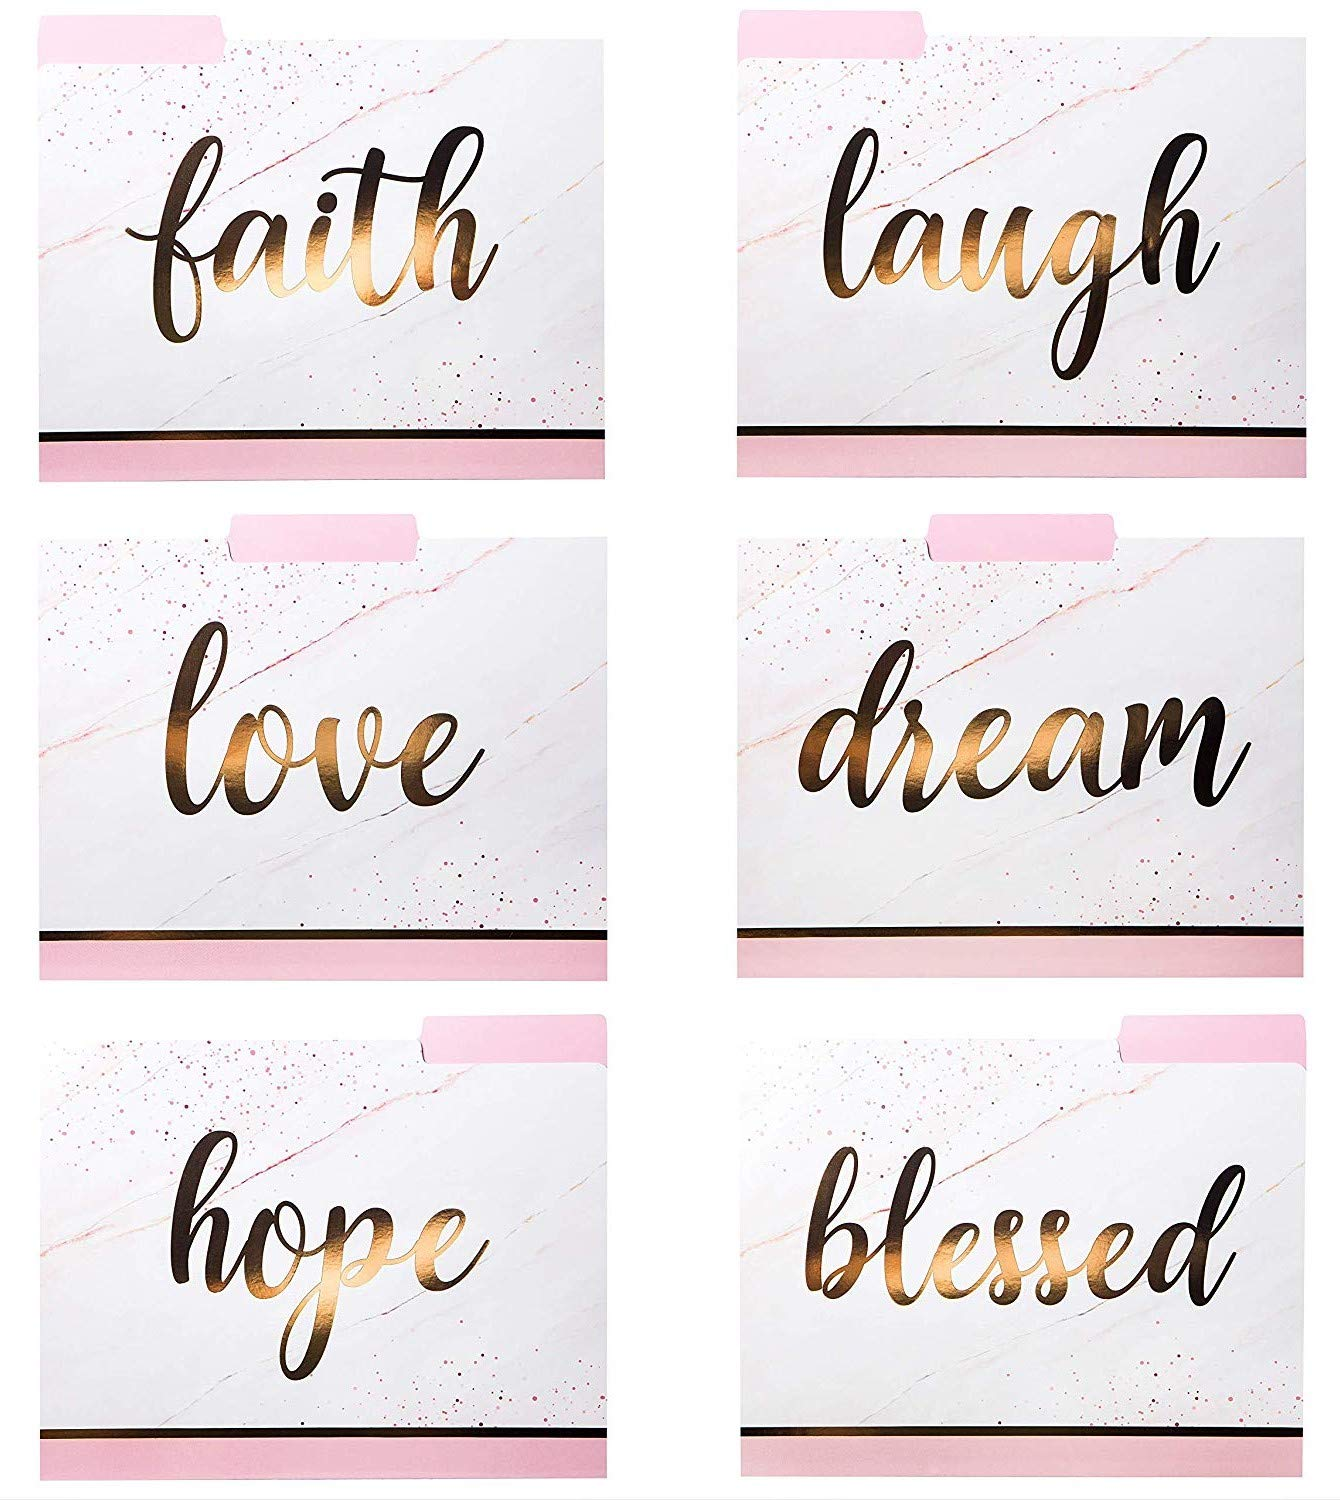 12 Fancy With Inspirational Words Emboss In Rose Gold Decorative File Folders